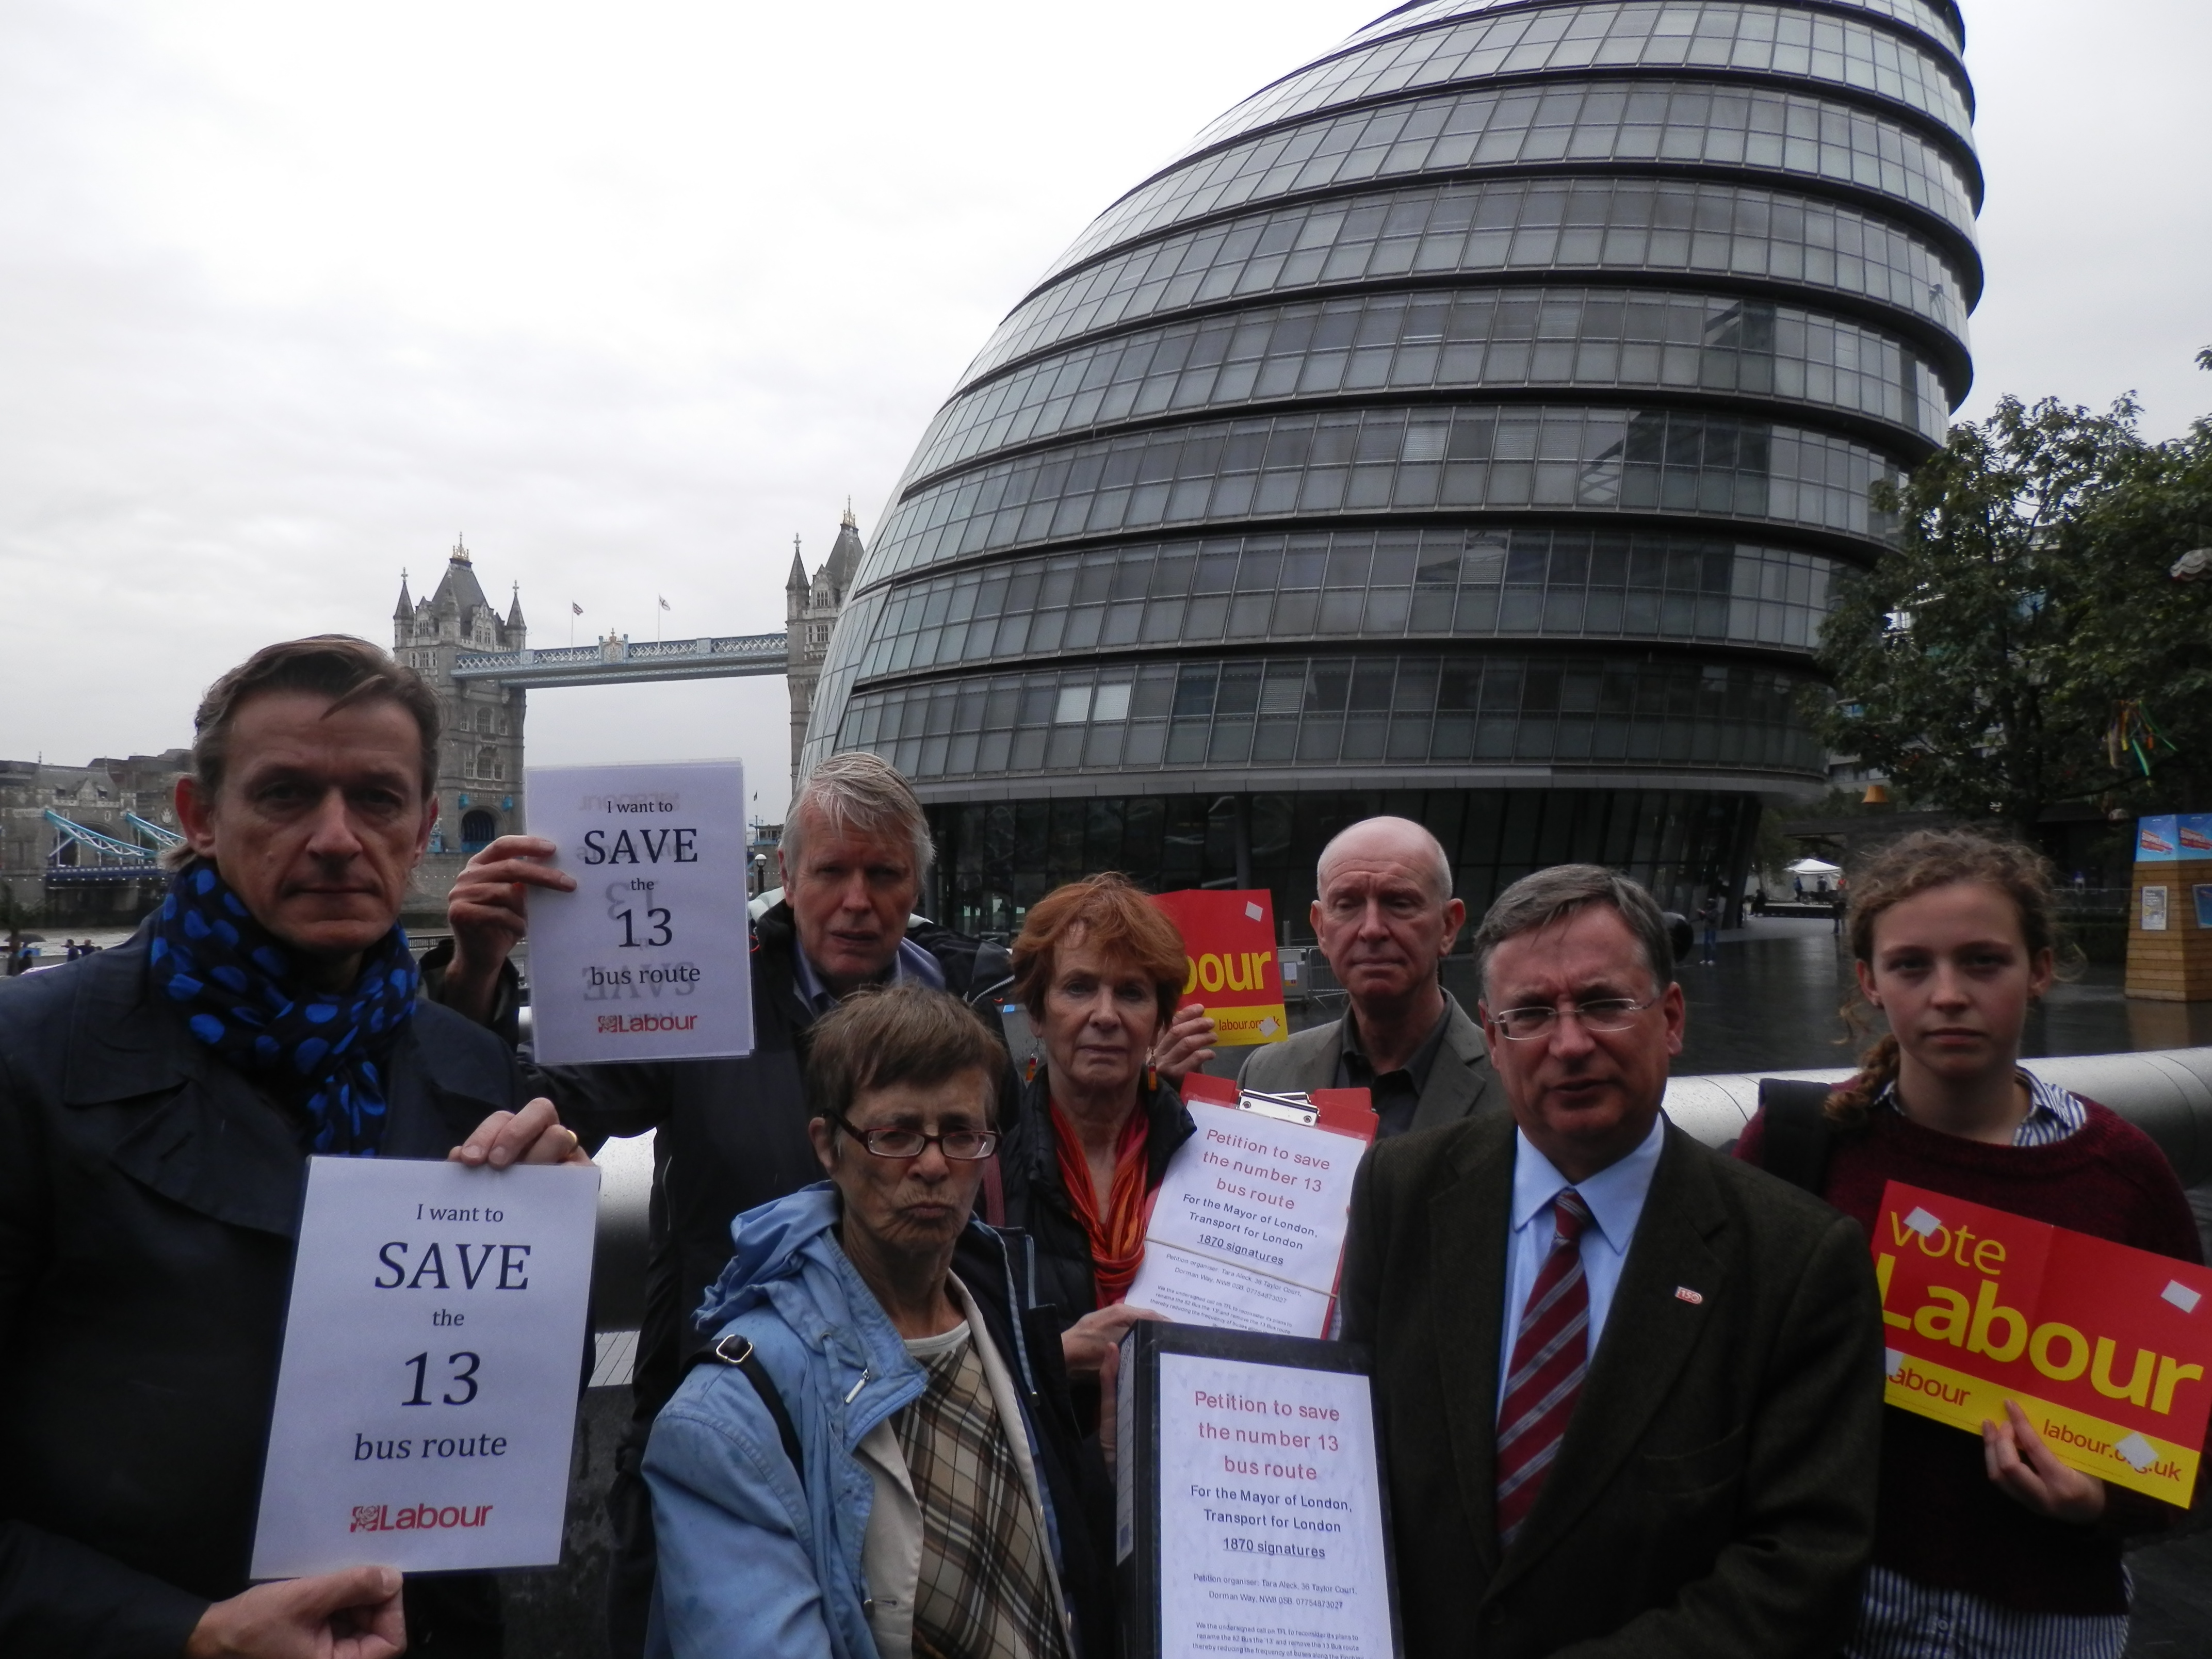 Andrew Dismore AM with 13 bus petitioners, including Cllr Richard Olszewski